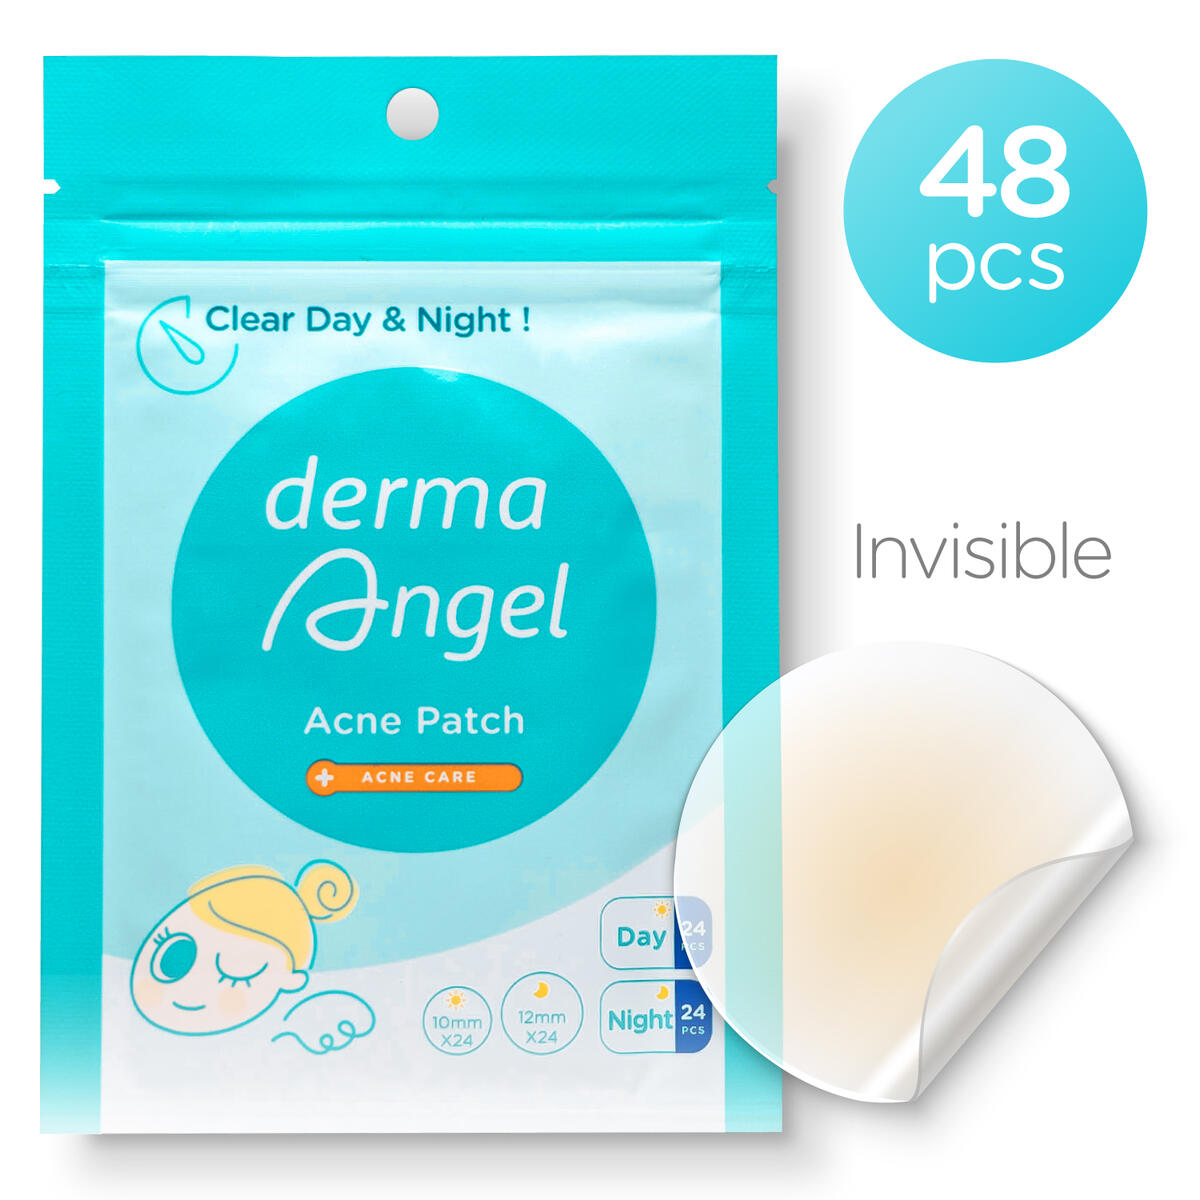 DermaAngel Acne Patches - Invisible Pimple Patch - Mighty Hydrocolloid Zit Stickers for Face - Cover Dots & Blemish - Spot Healing Treatment Sticker (48 pcs pack) - Day & Night Absorbing Skin Care